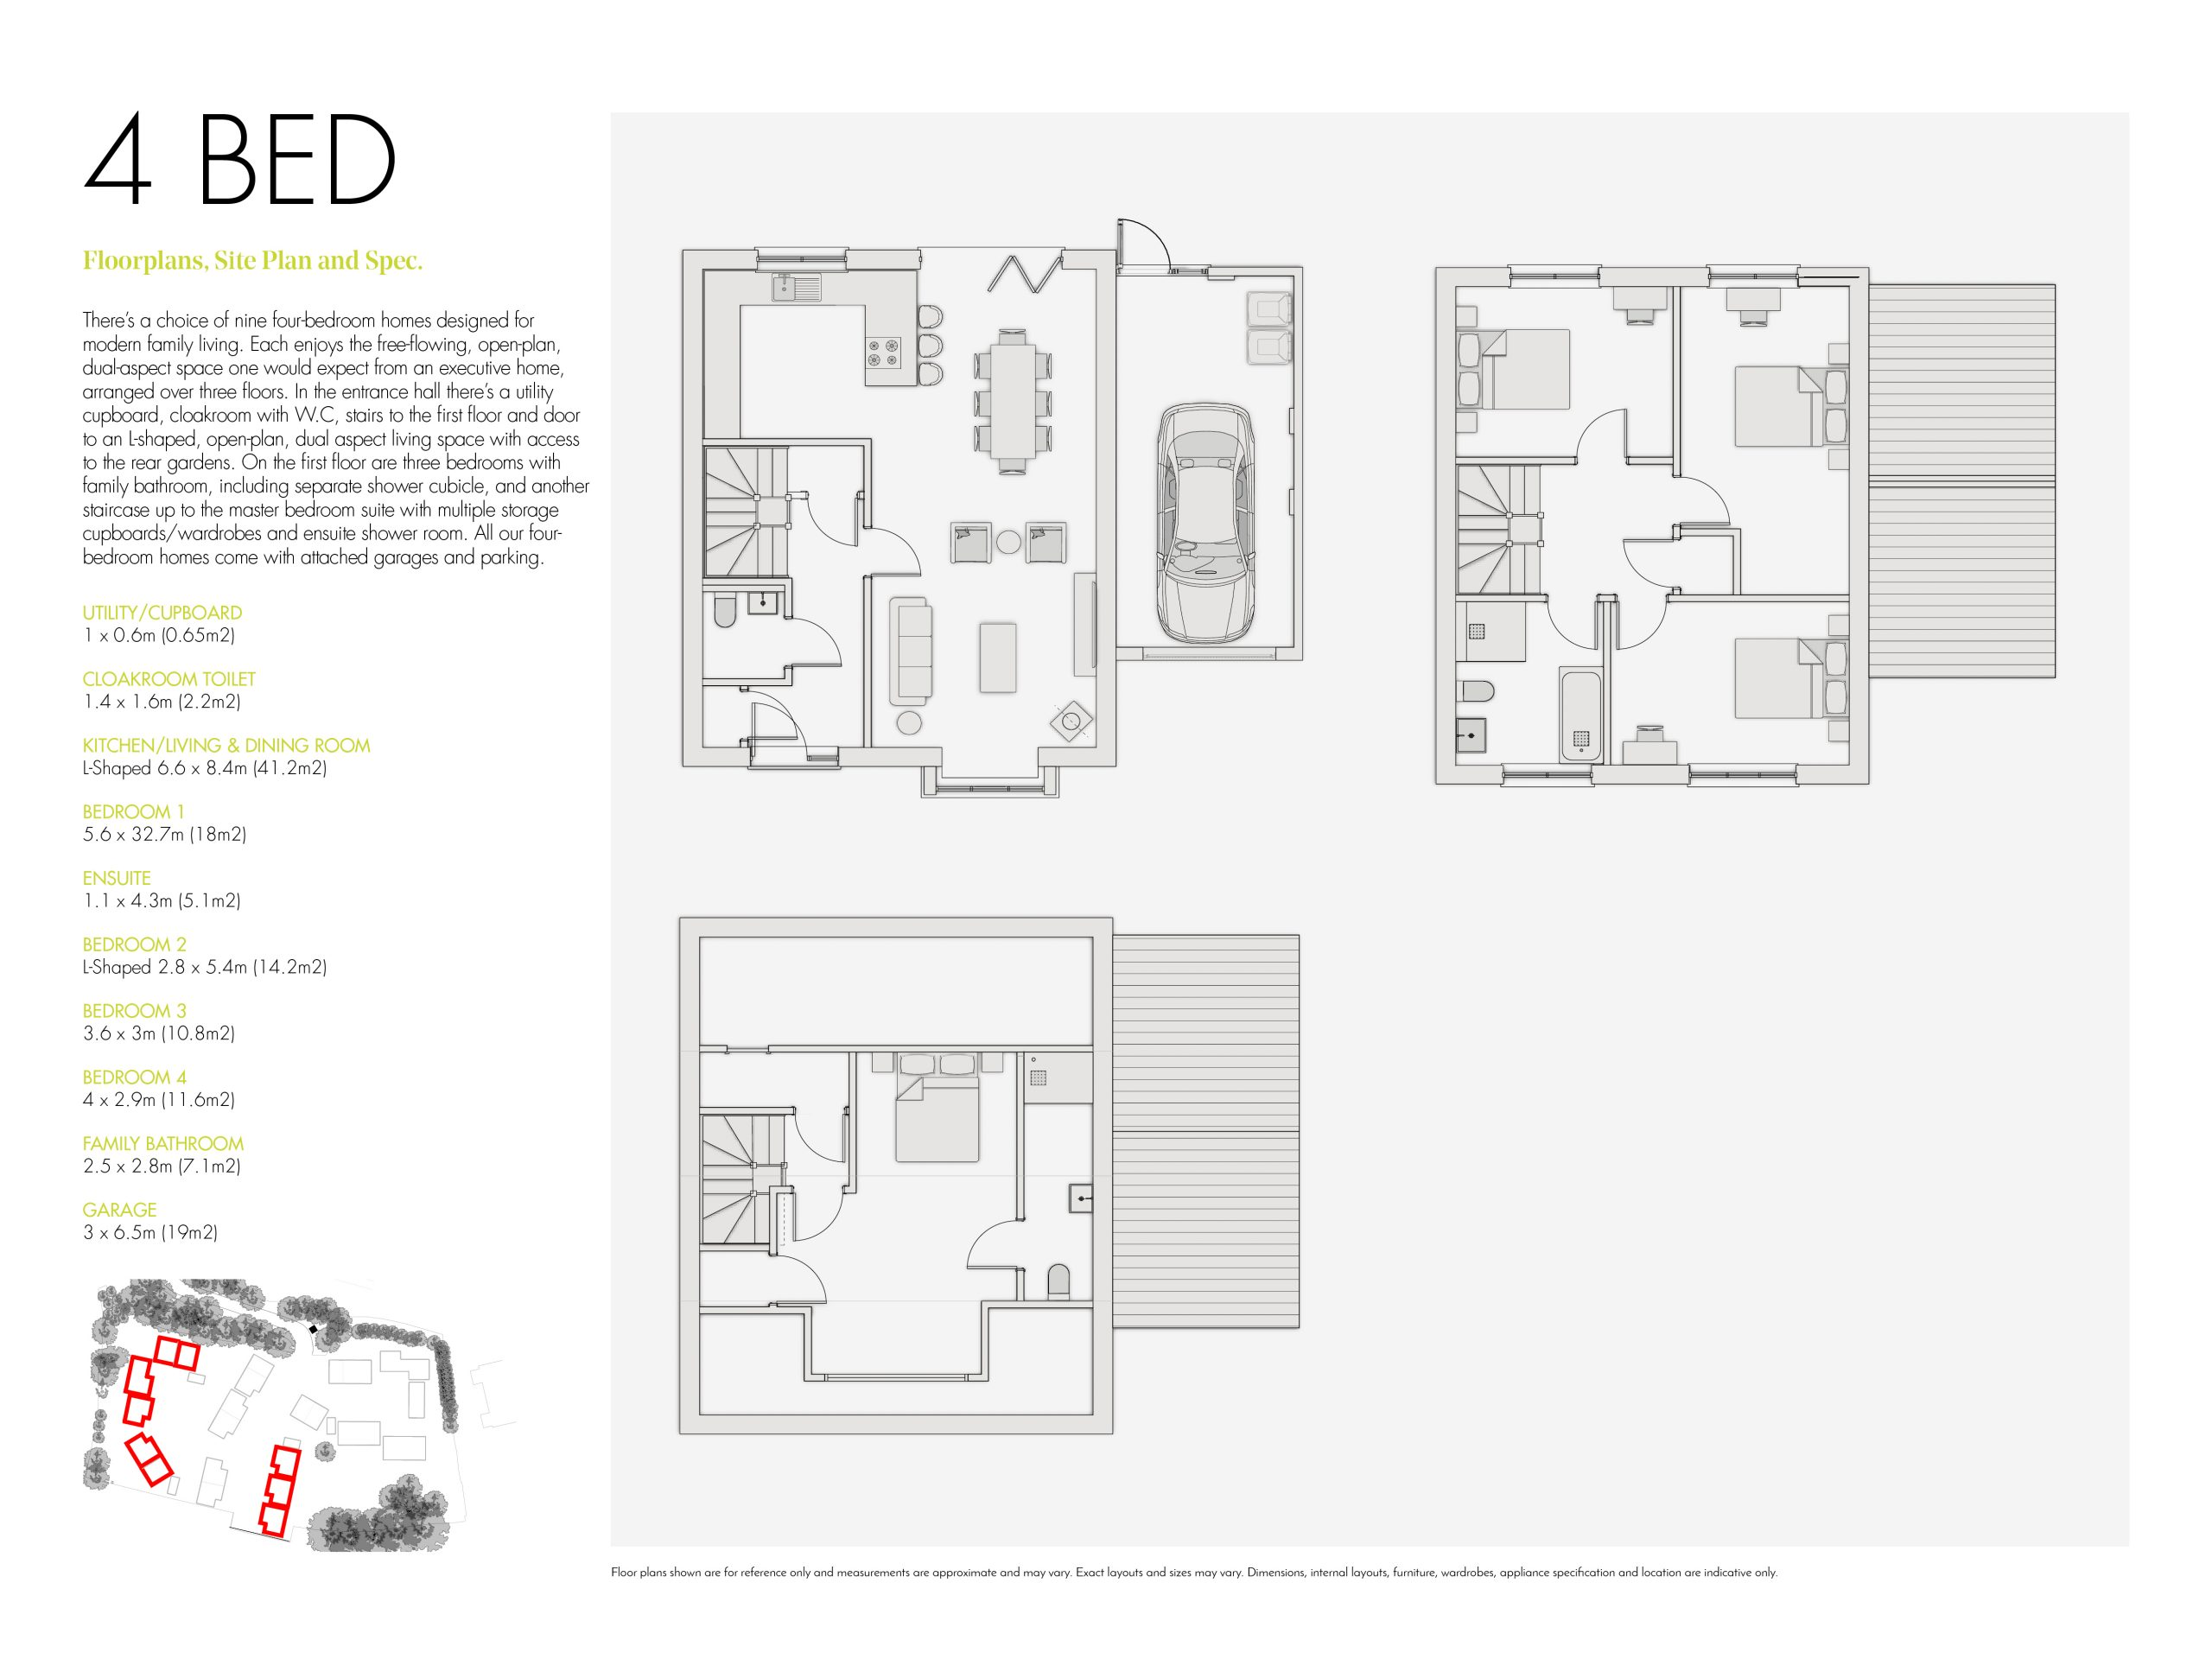 Stephens and stephens developers The Boundary Gloweth Barton Truro cornwall Floorplans 1200x900 4 bed new